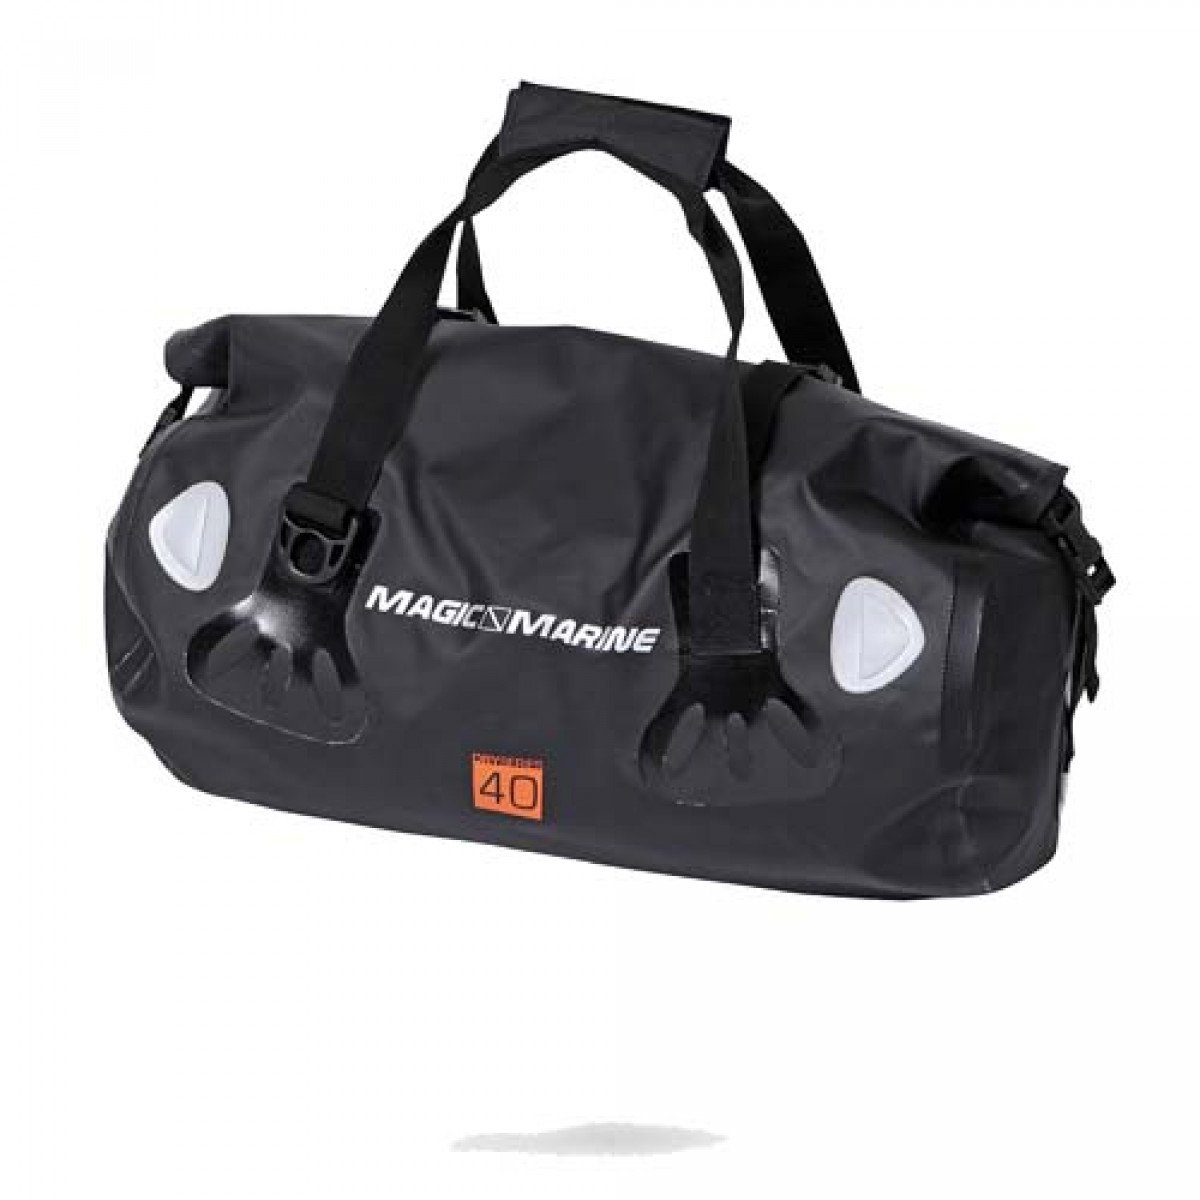 4cf221c0d2 MagicMarine Magic Marine Borsa stagna 40 litri a 59,79 € - MM ...